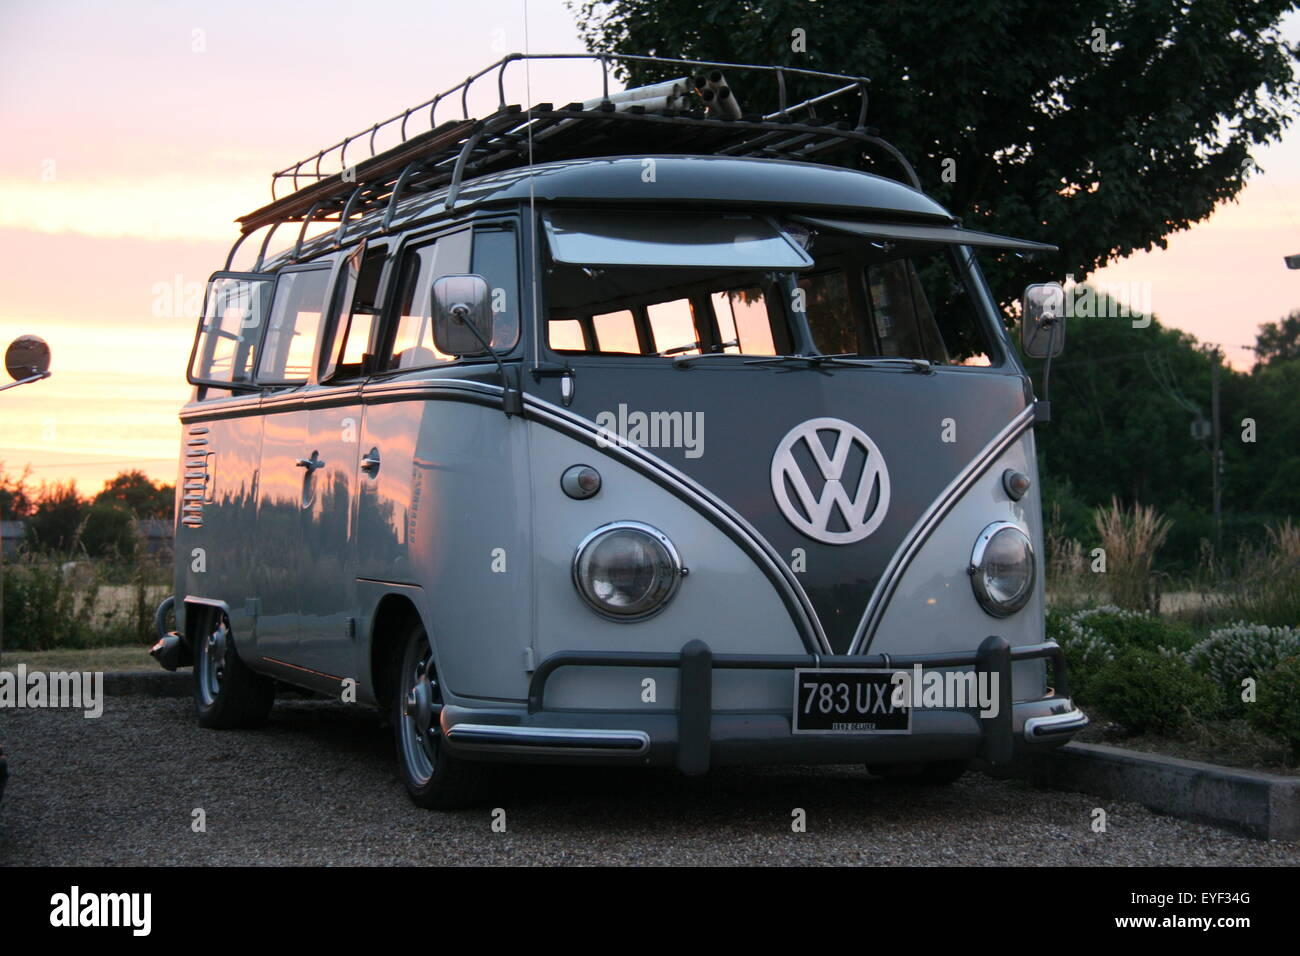 Beau ... A TWO TONE GREY RETRO MODIFIED 1962 VOLKSWAGEN VW CAMPER BUS TAKEN AT  DUSK WITH